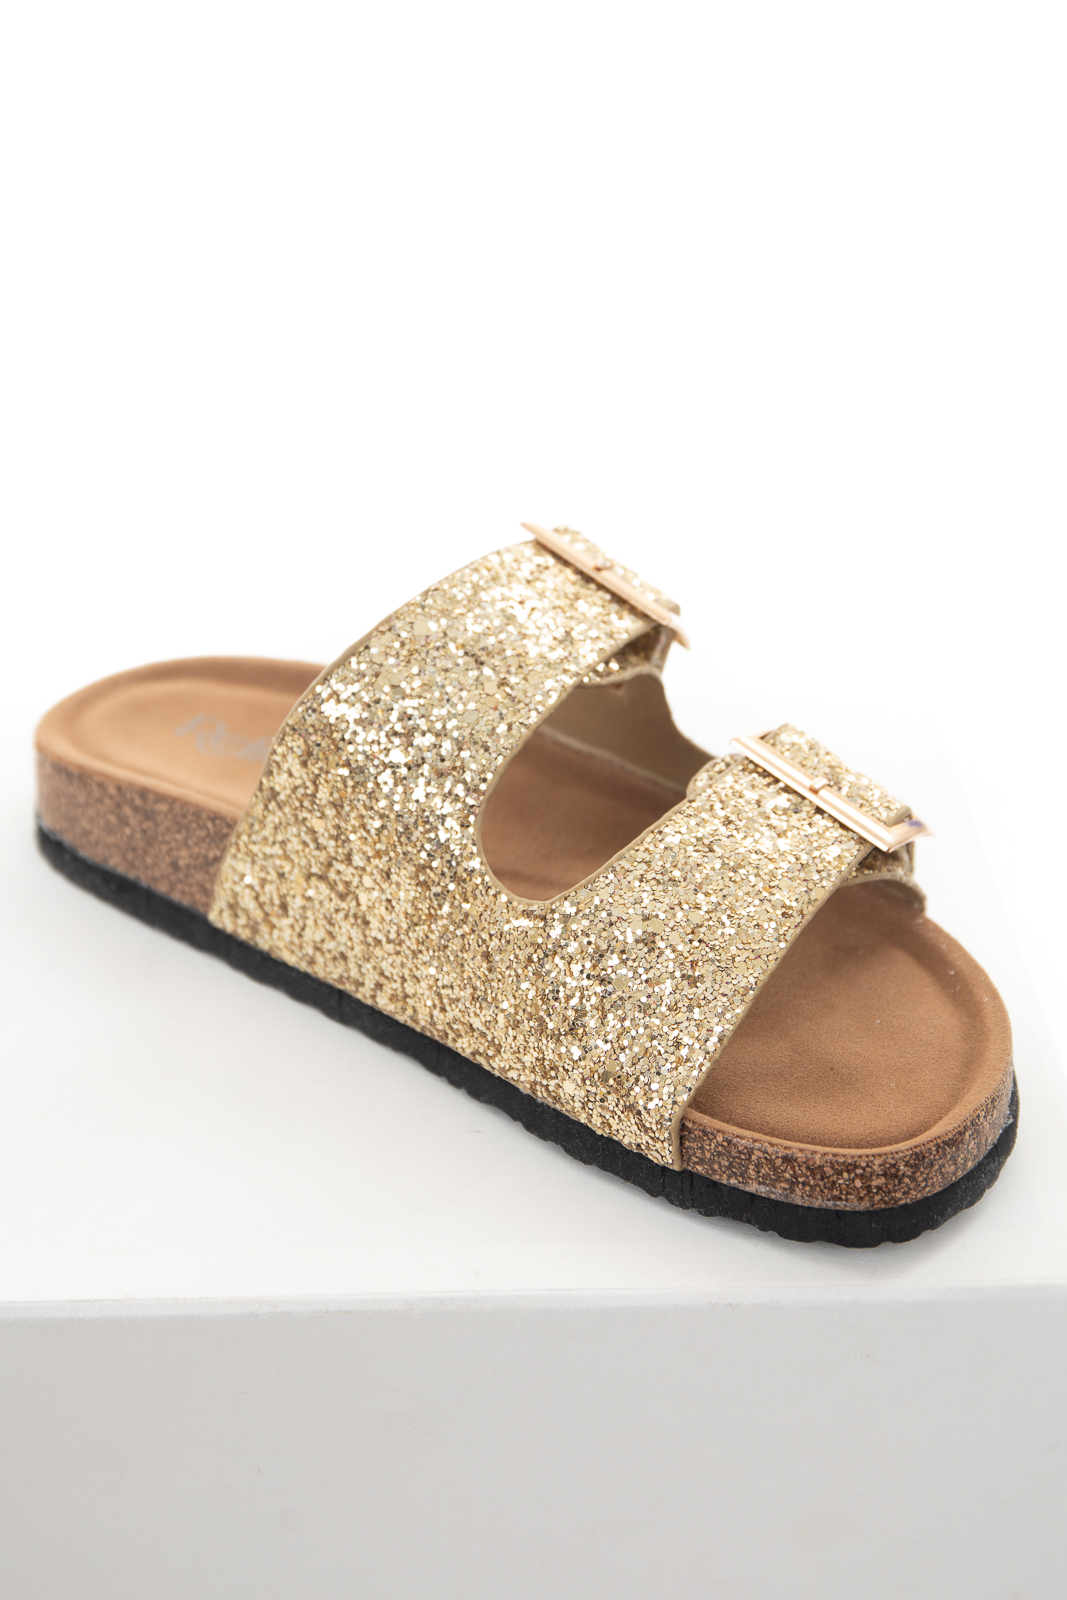 Gold Glitter Open Toe Strap Slip On Sandals with Buckles